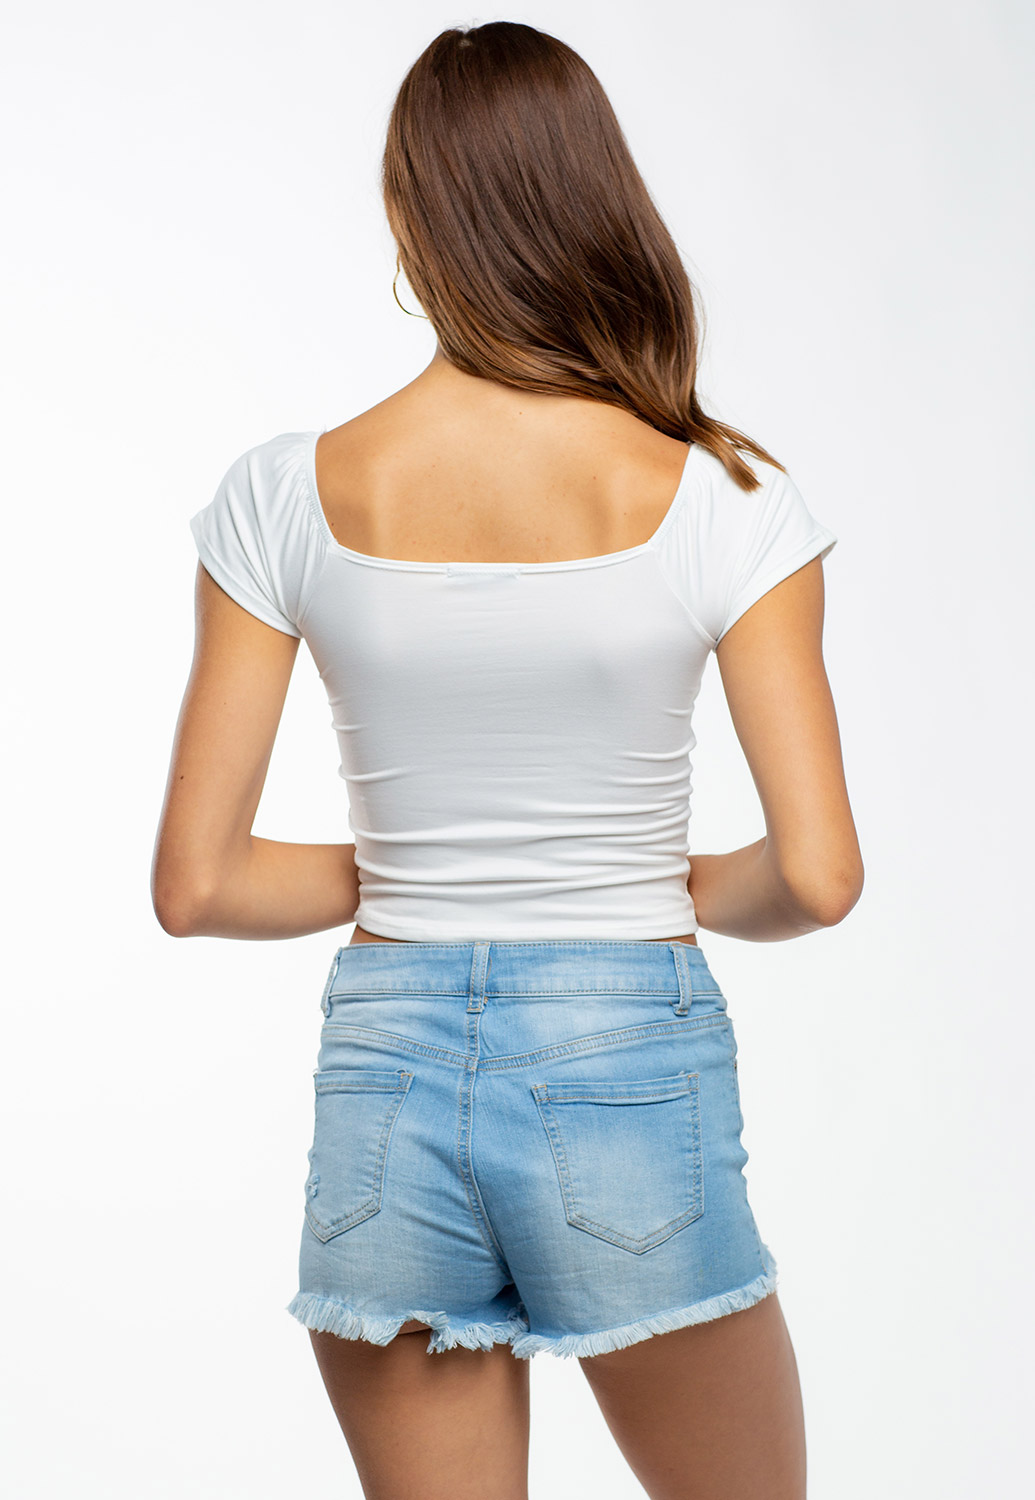 Short Sleeve Square Neck Crop Top